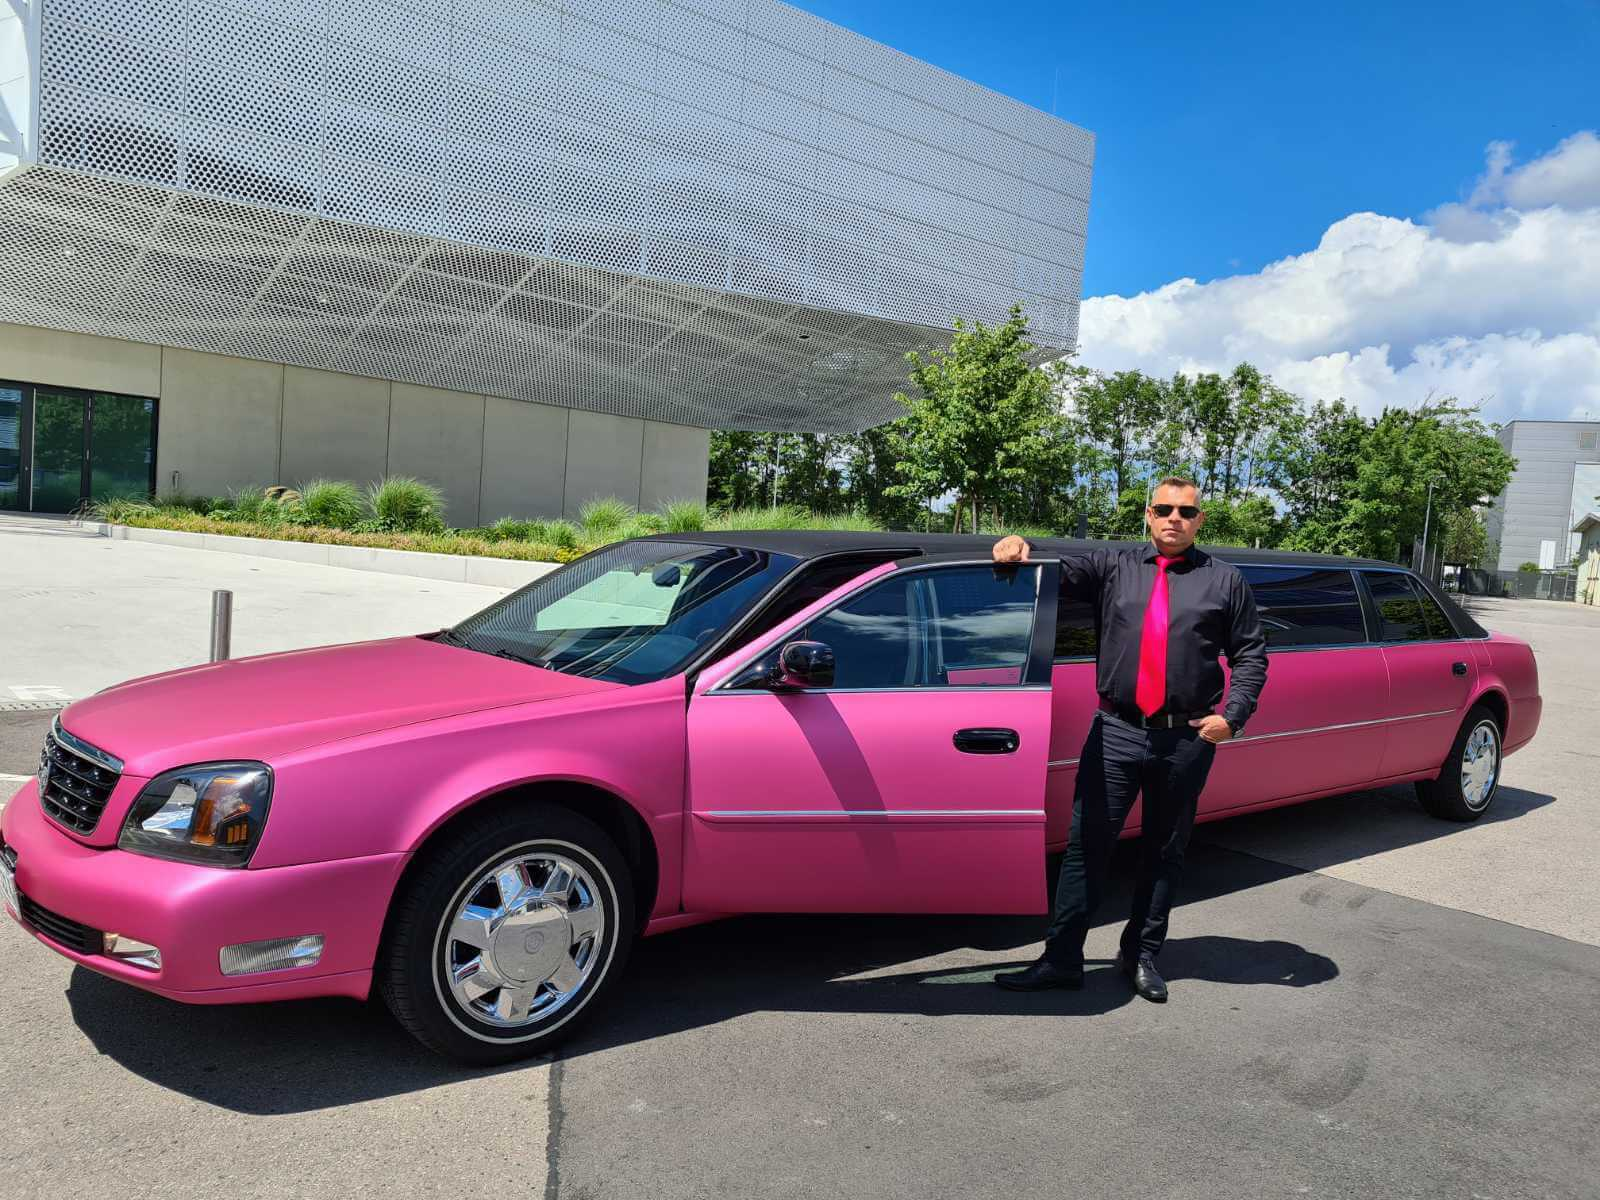 Pink Party Limousine